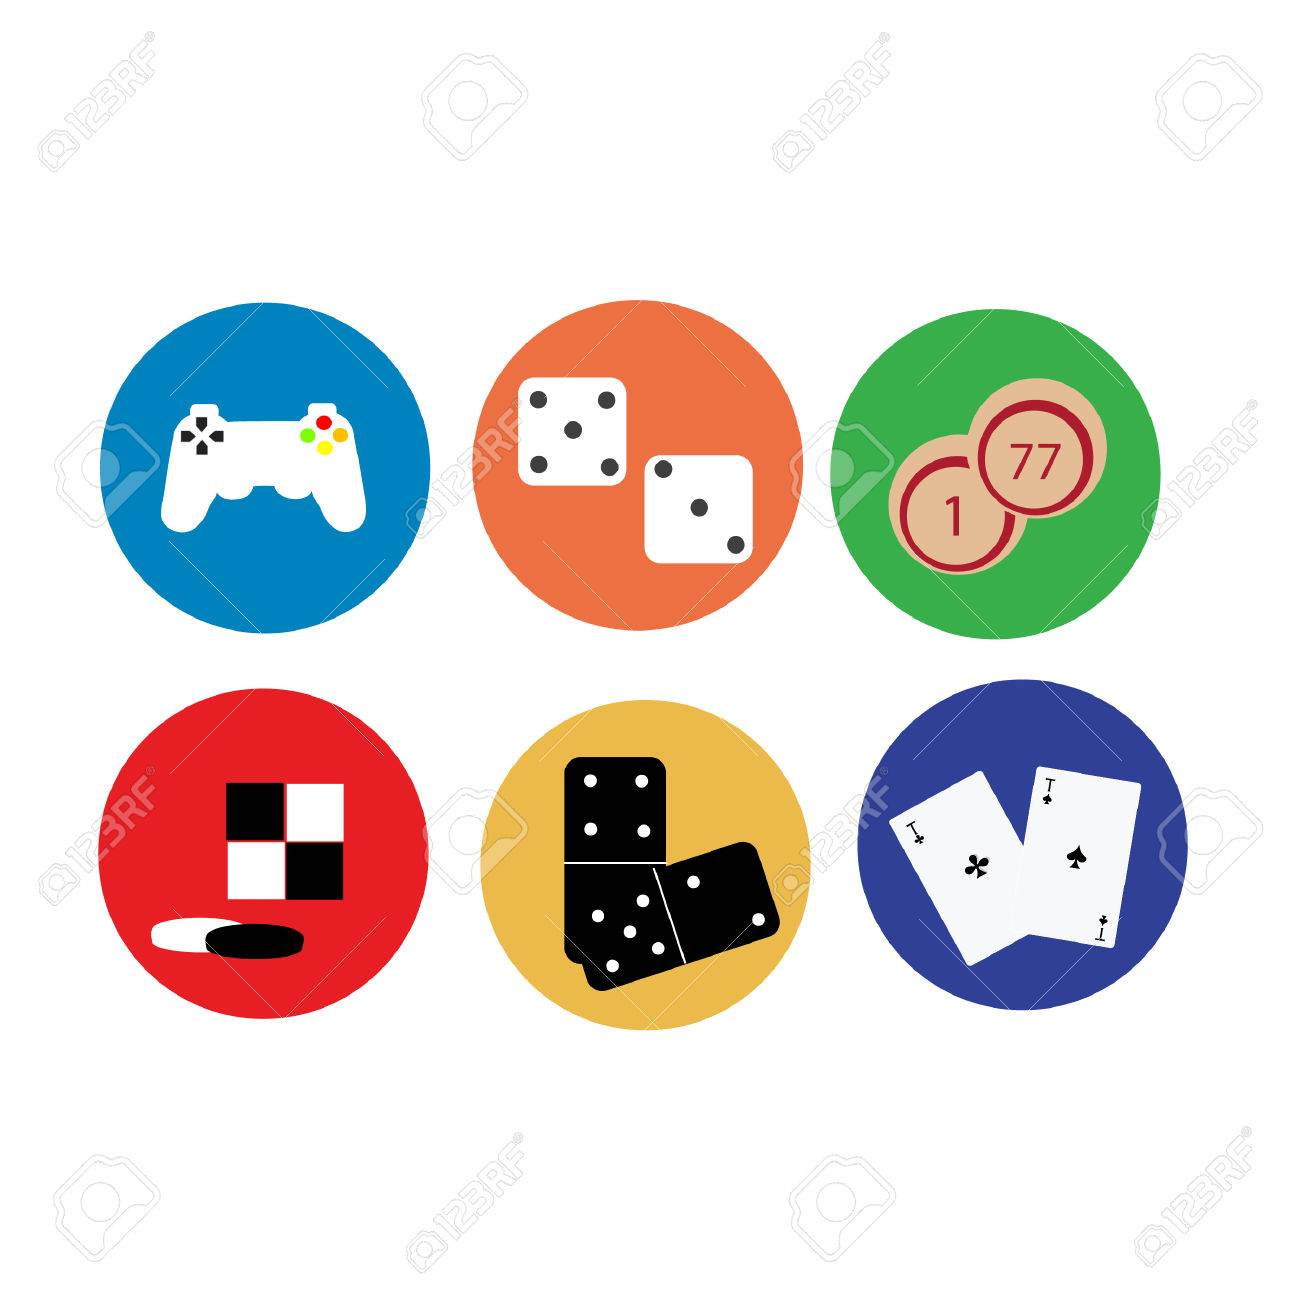 Illustration Of Game Game Icons Video Game Icon Play Icon